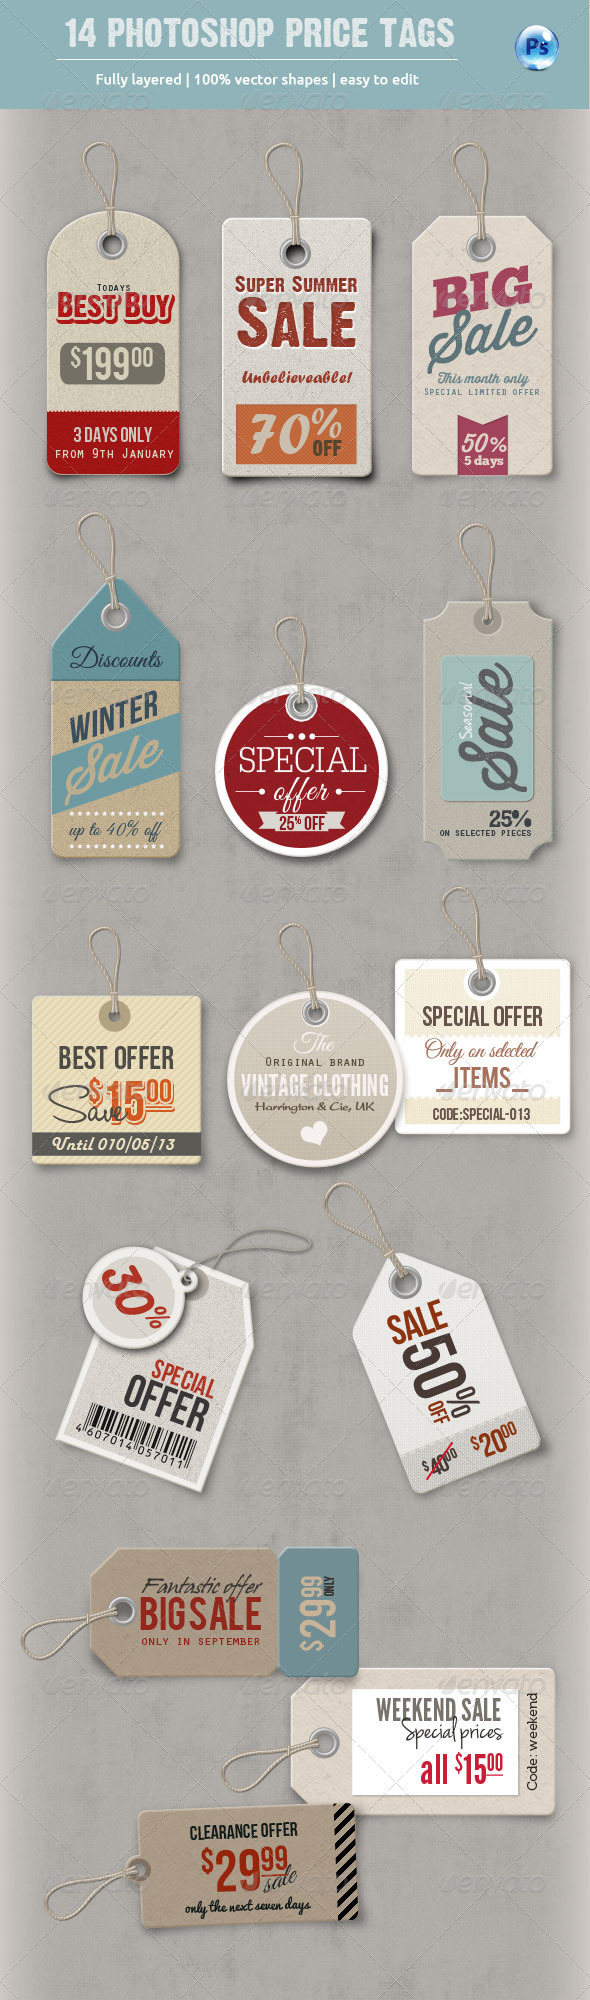 GraphicRiver 14 Photoshop Price Tags 5627649